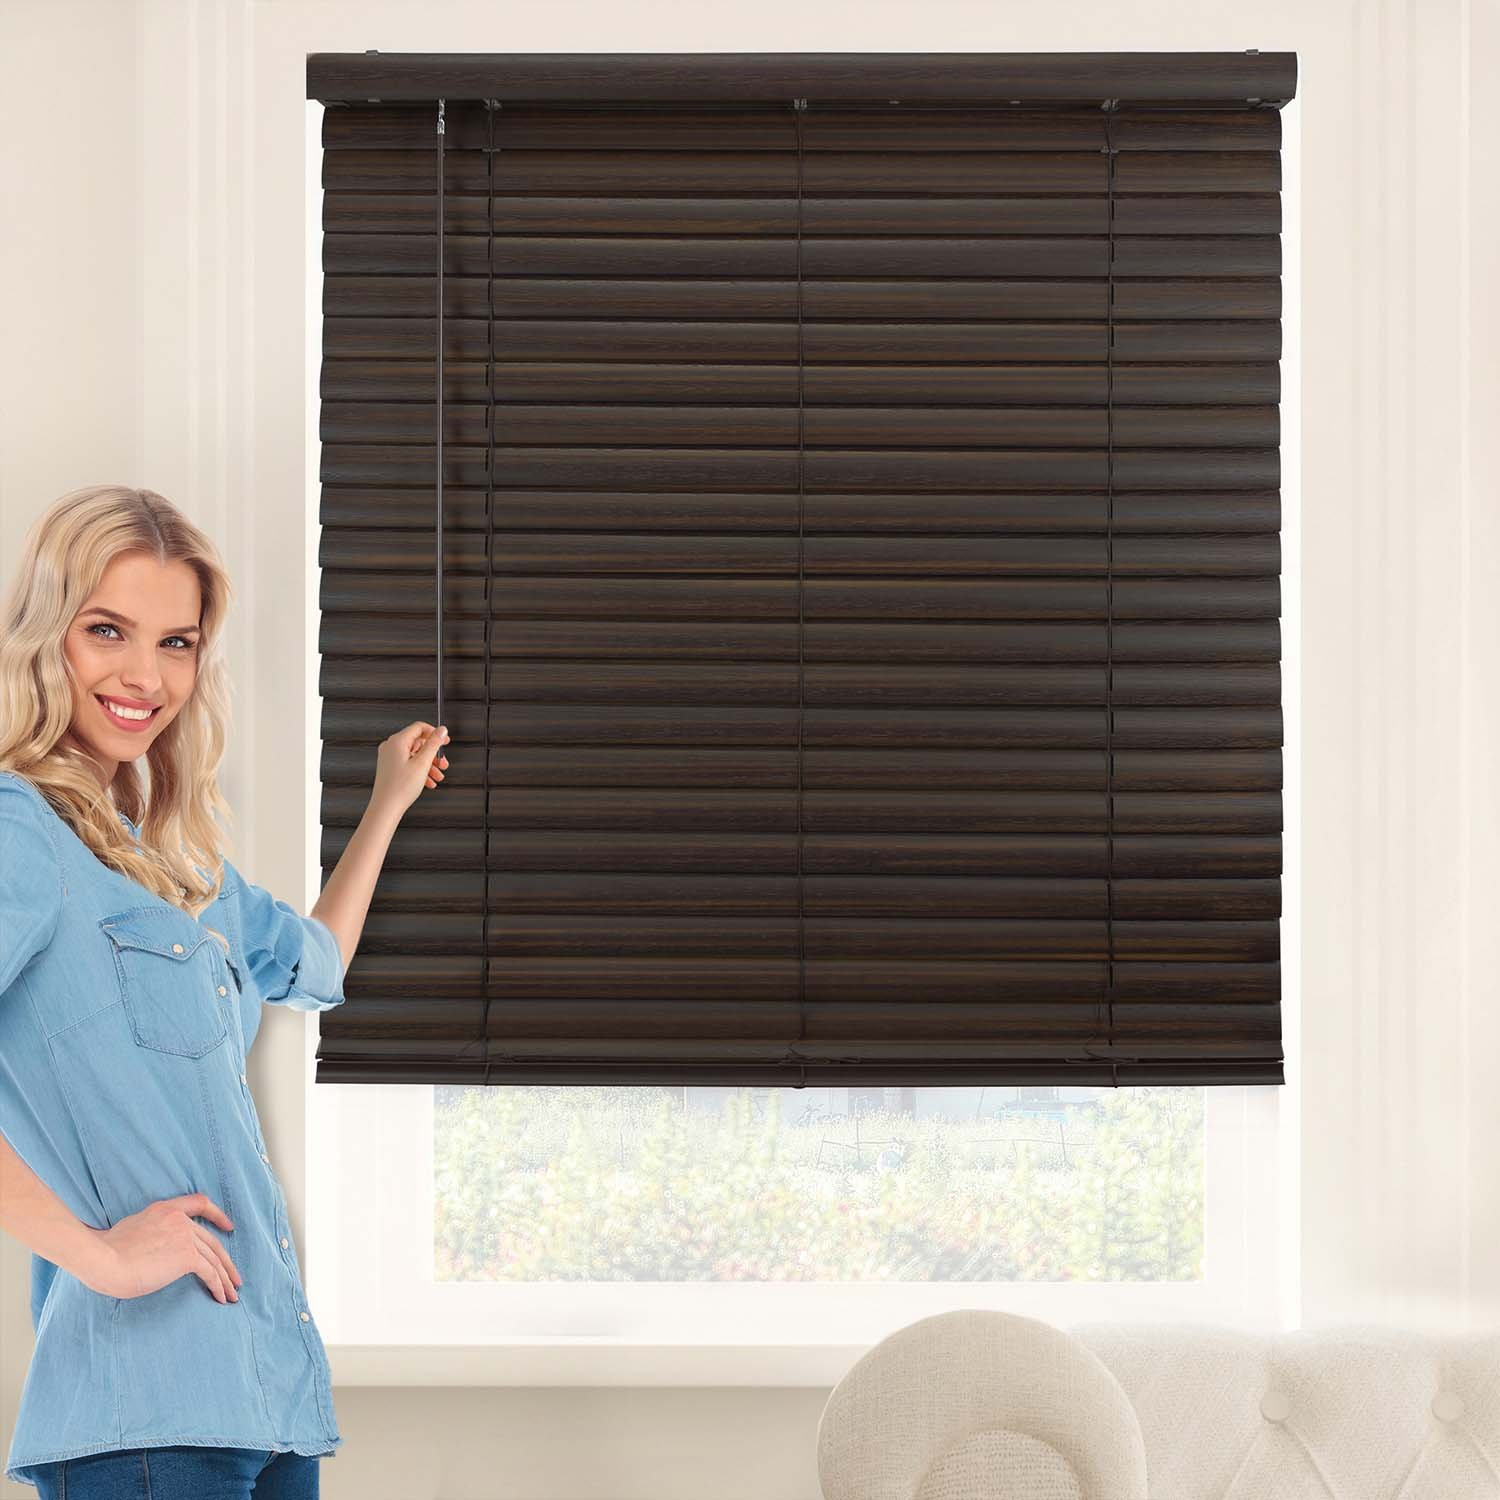 Chicology VNBDW4764 Cordless Vinyl Blind, 2 Printed Dark Walnut 47 W X 64 H